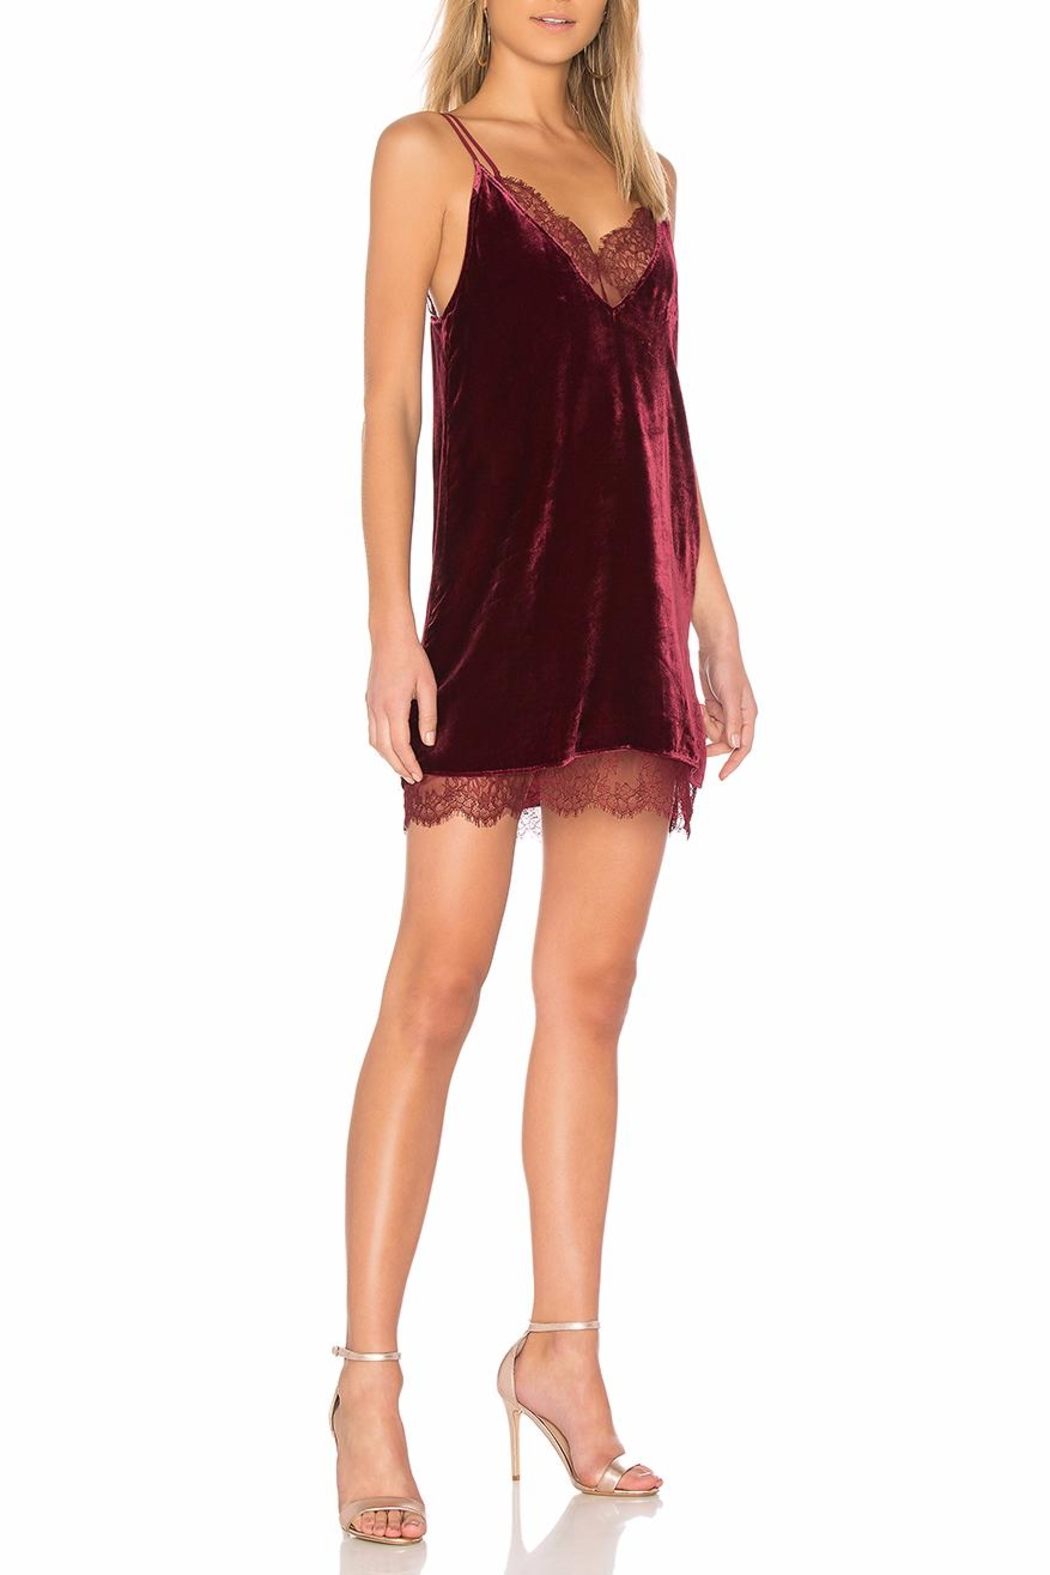 Cami NYC Burgundy Velvet Dress - Front Full Image